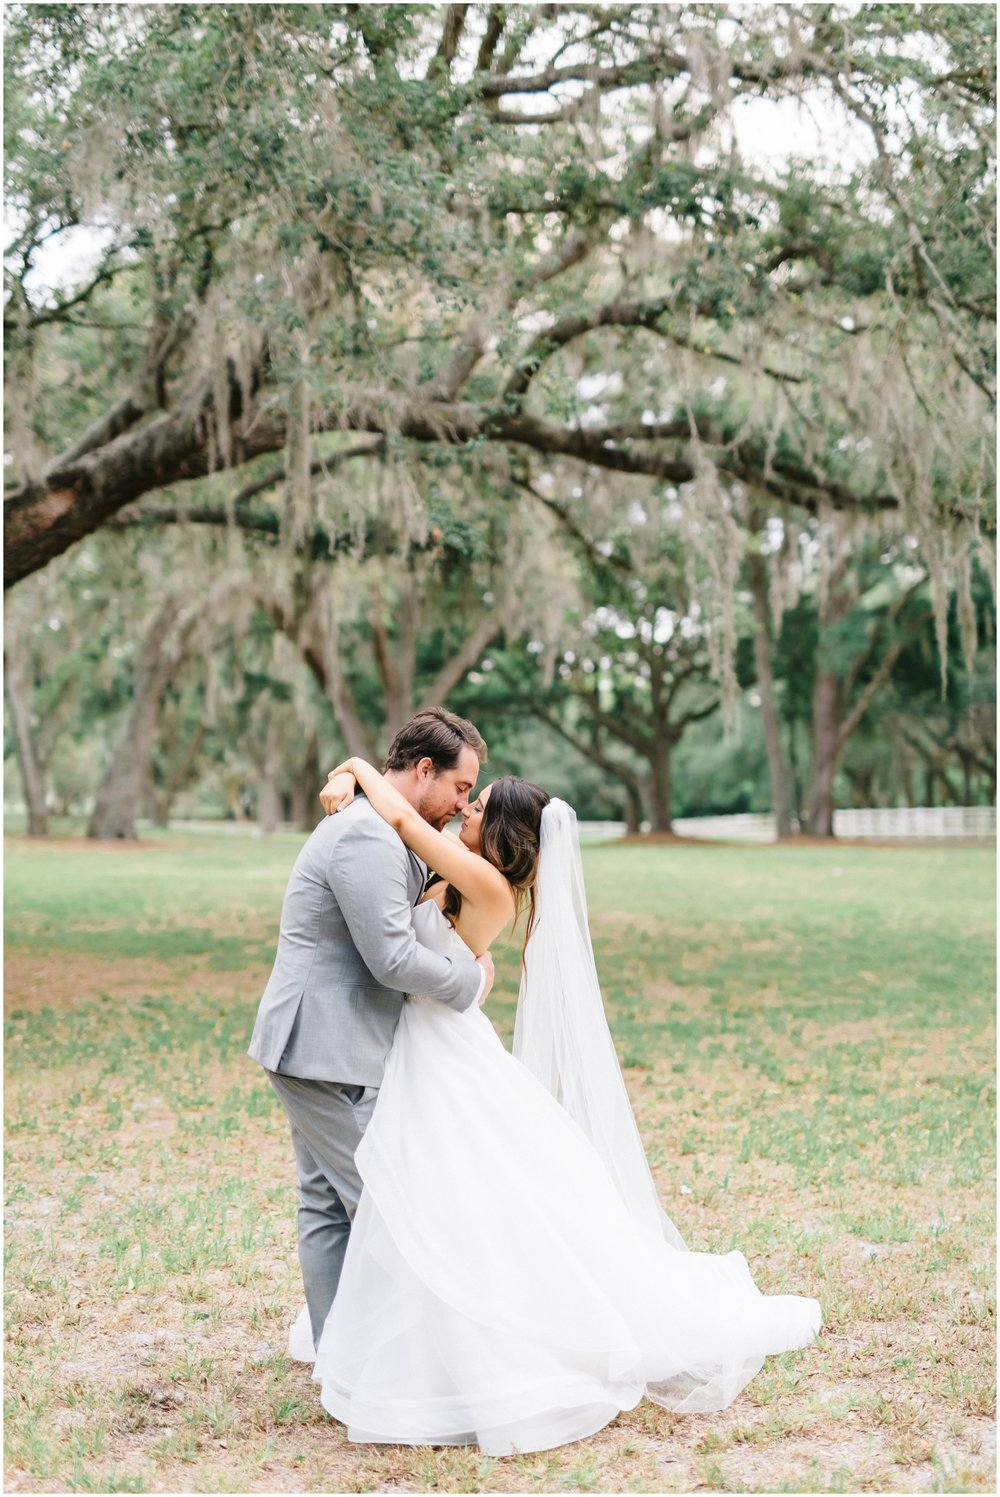 Bride and groom kiss at their Florida wedding